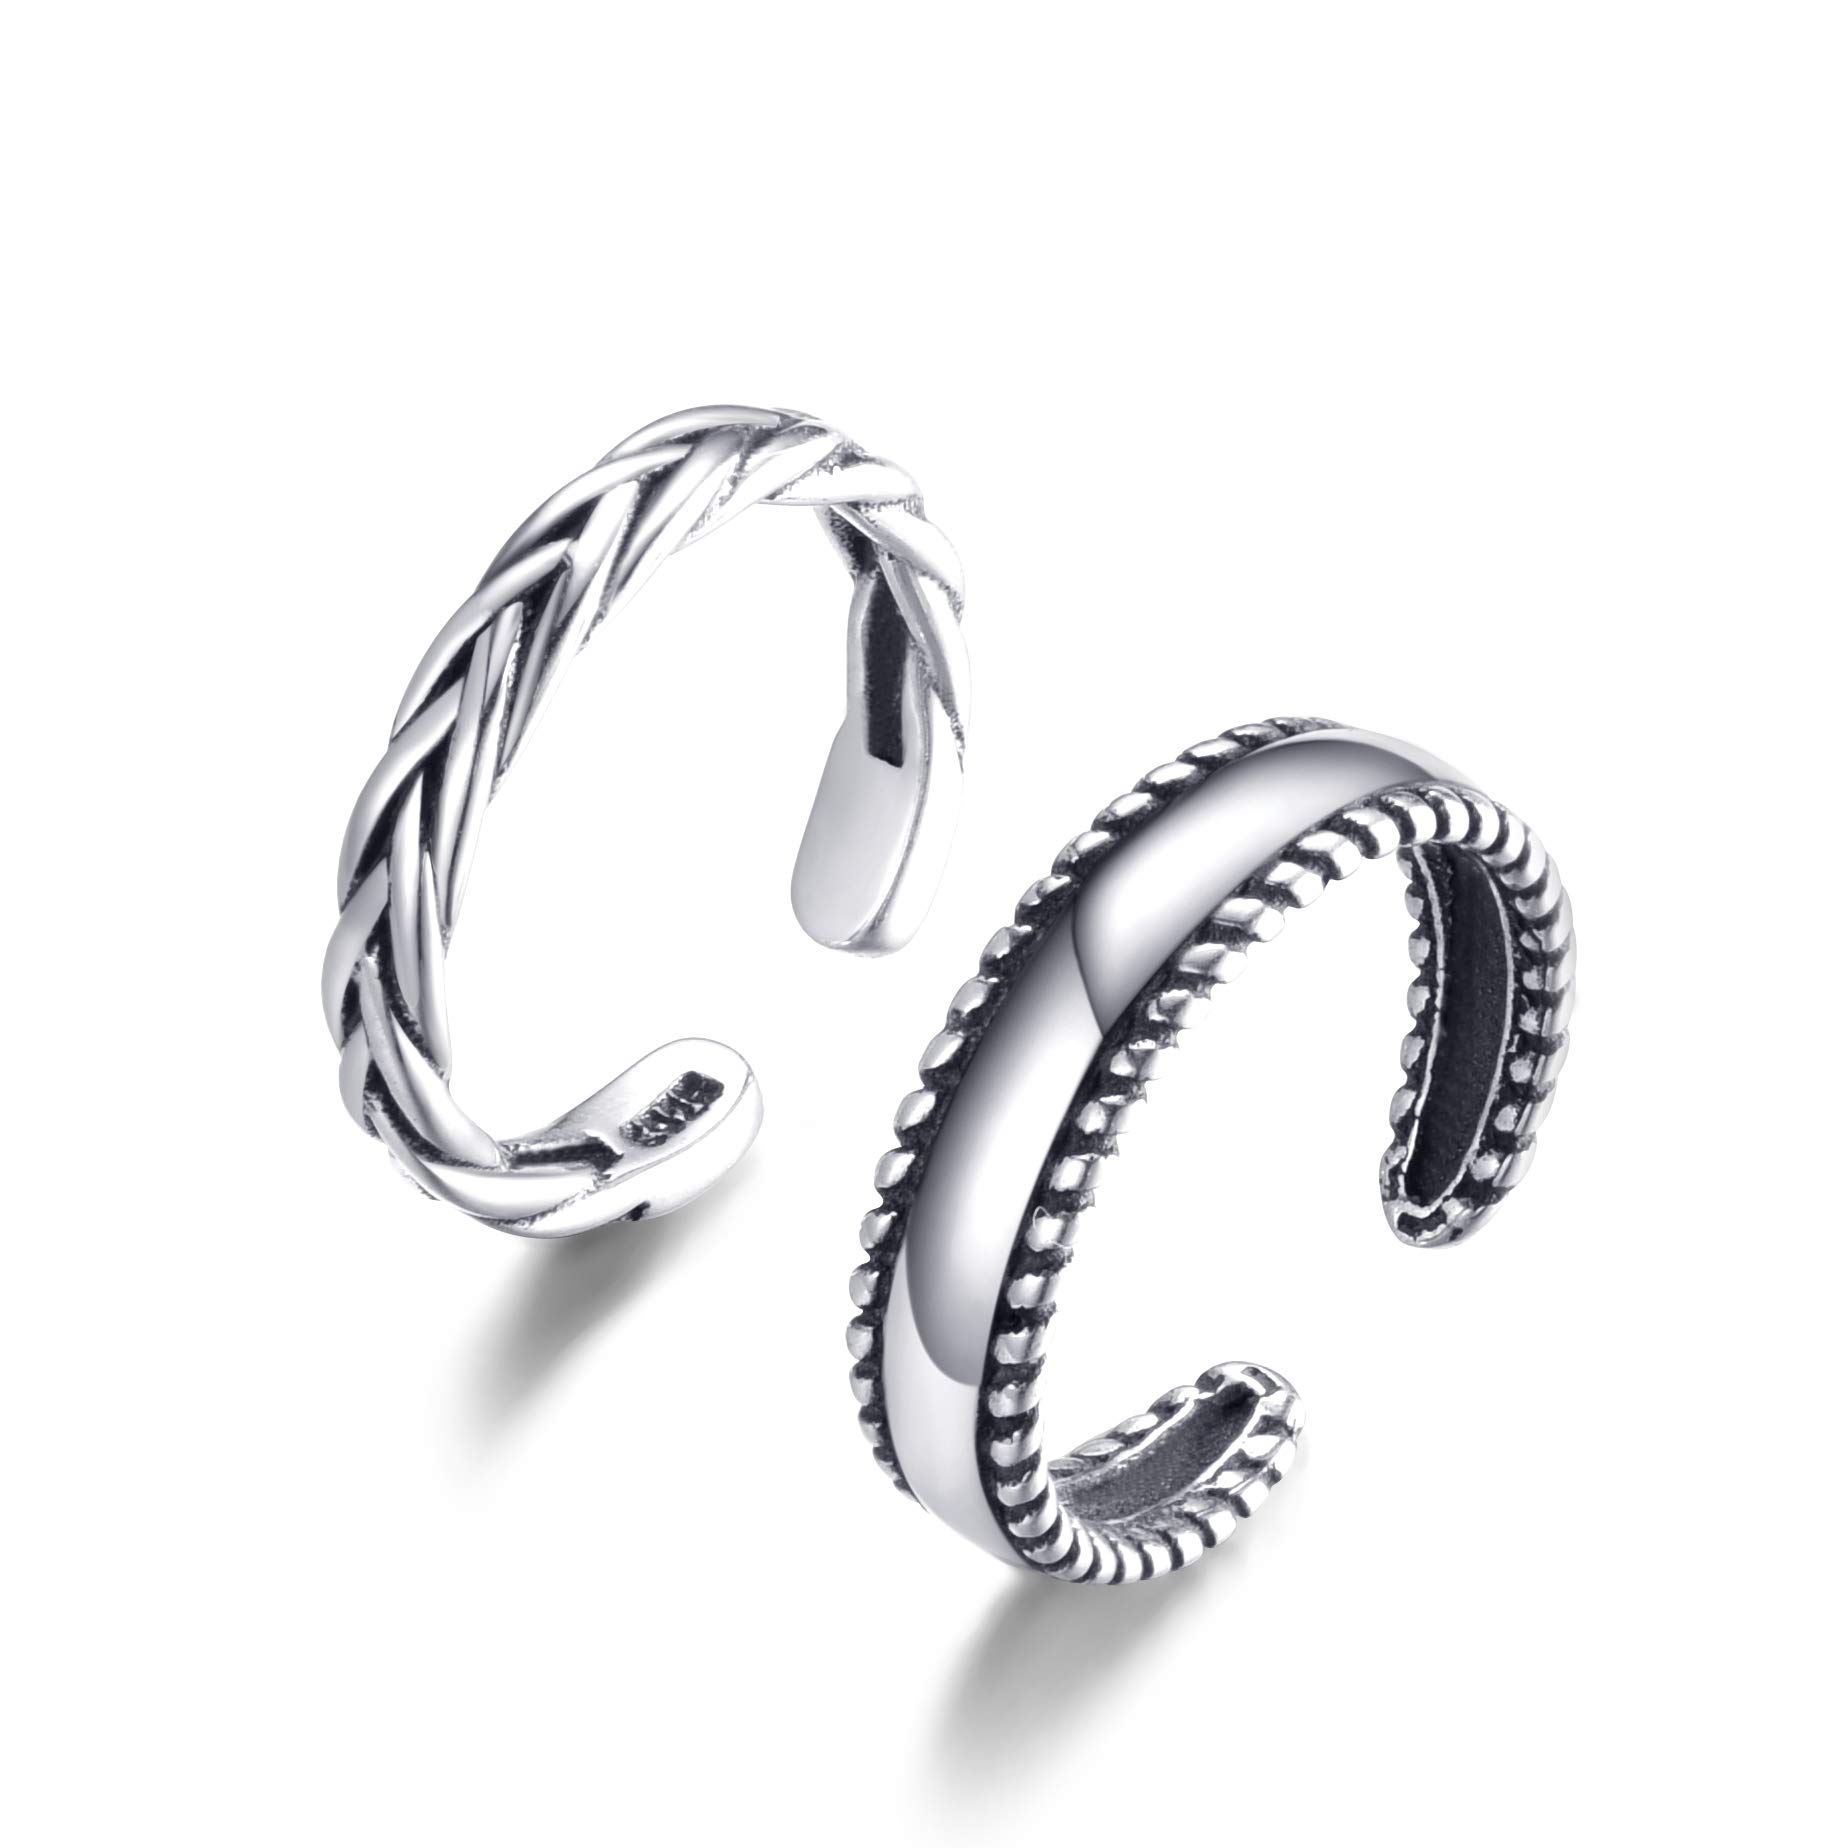 Cladtina 2PCS Sterling Silver Open Adjustable Toe Rings Vintage Braid Rings for Women Girls (Braided Style) by Cladtina